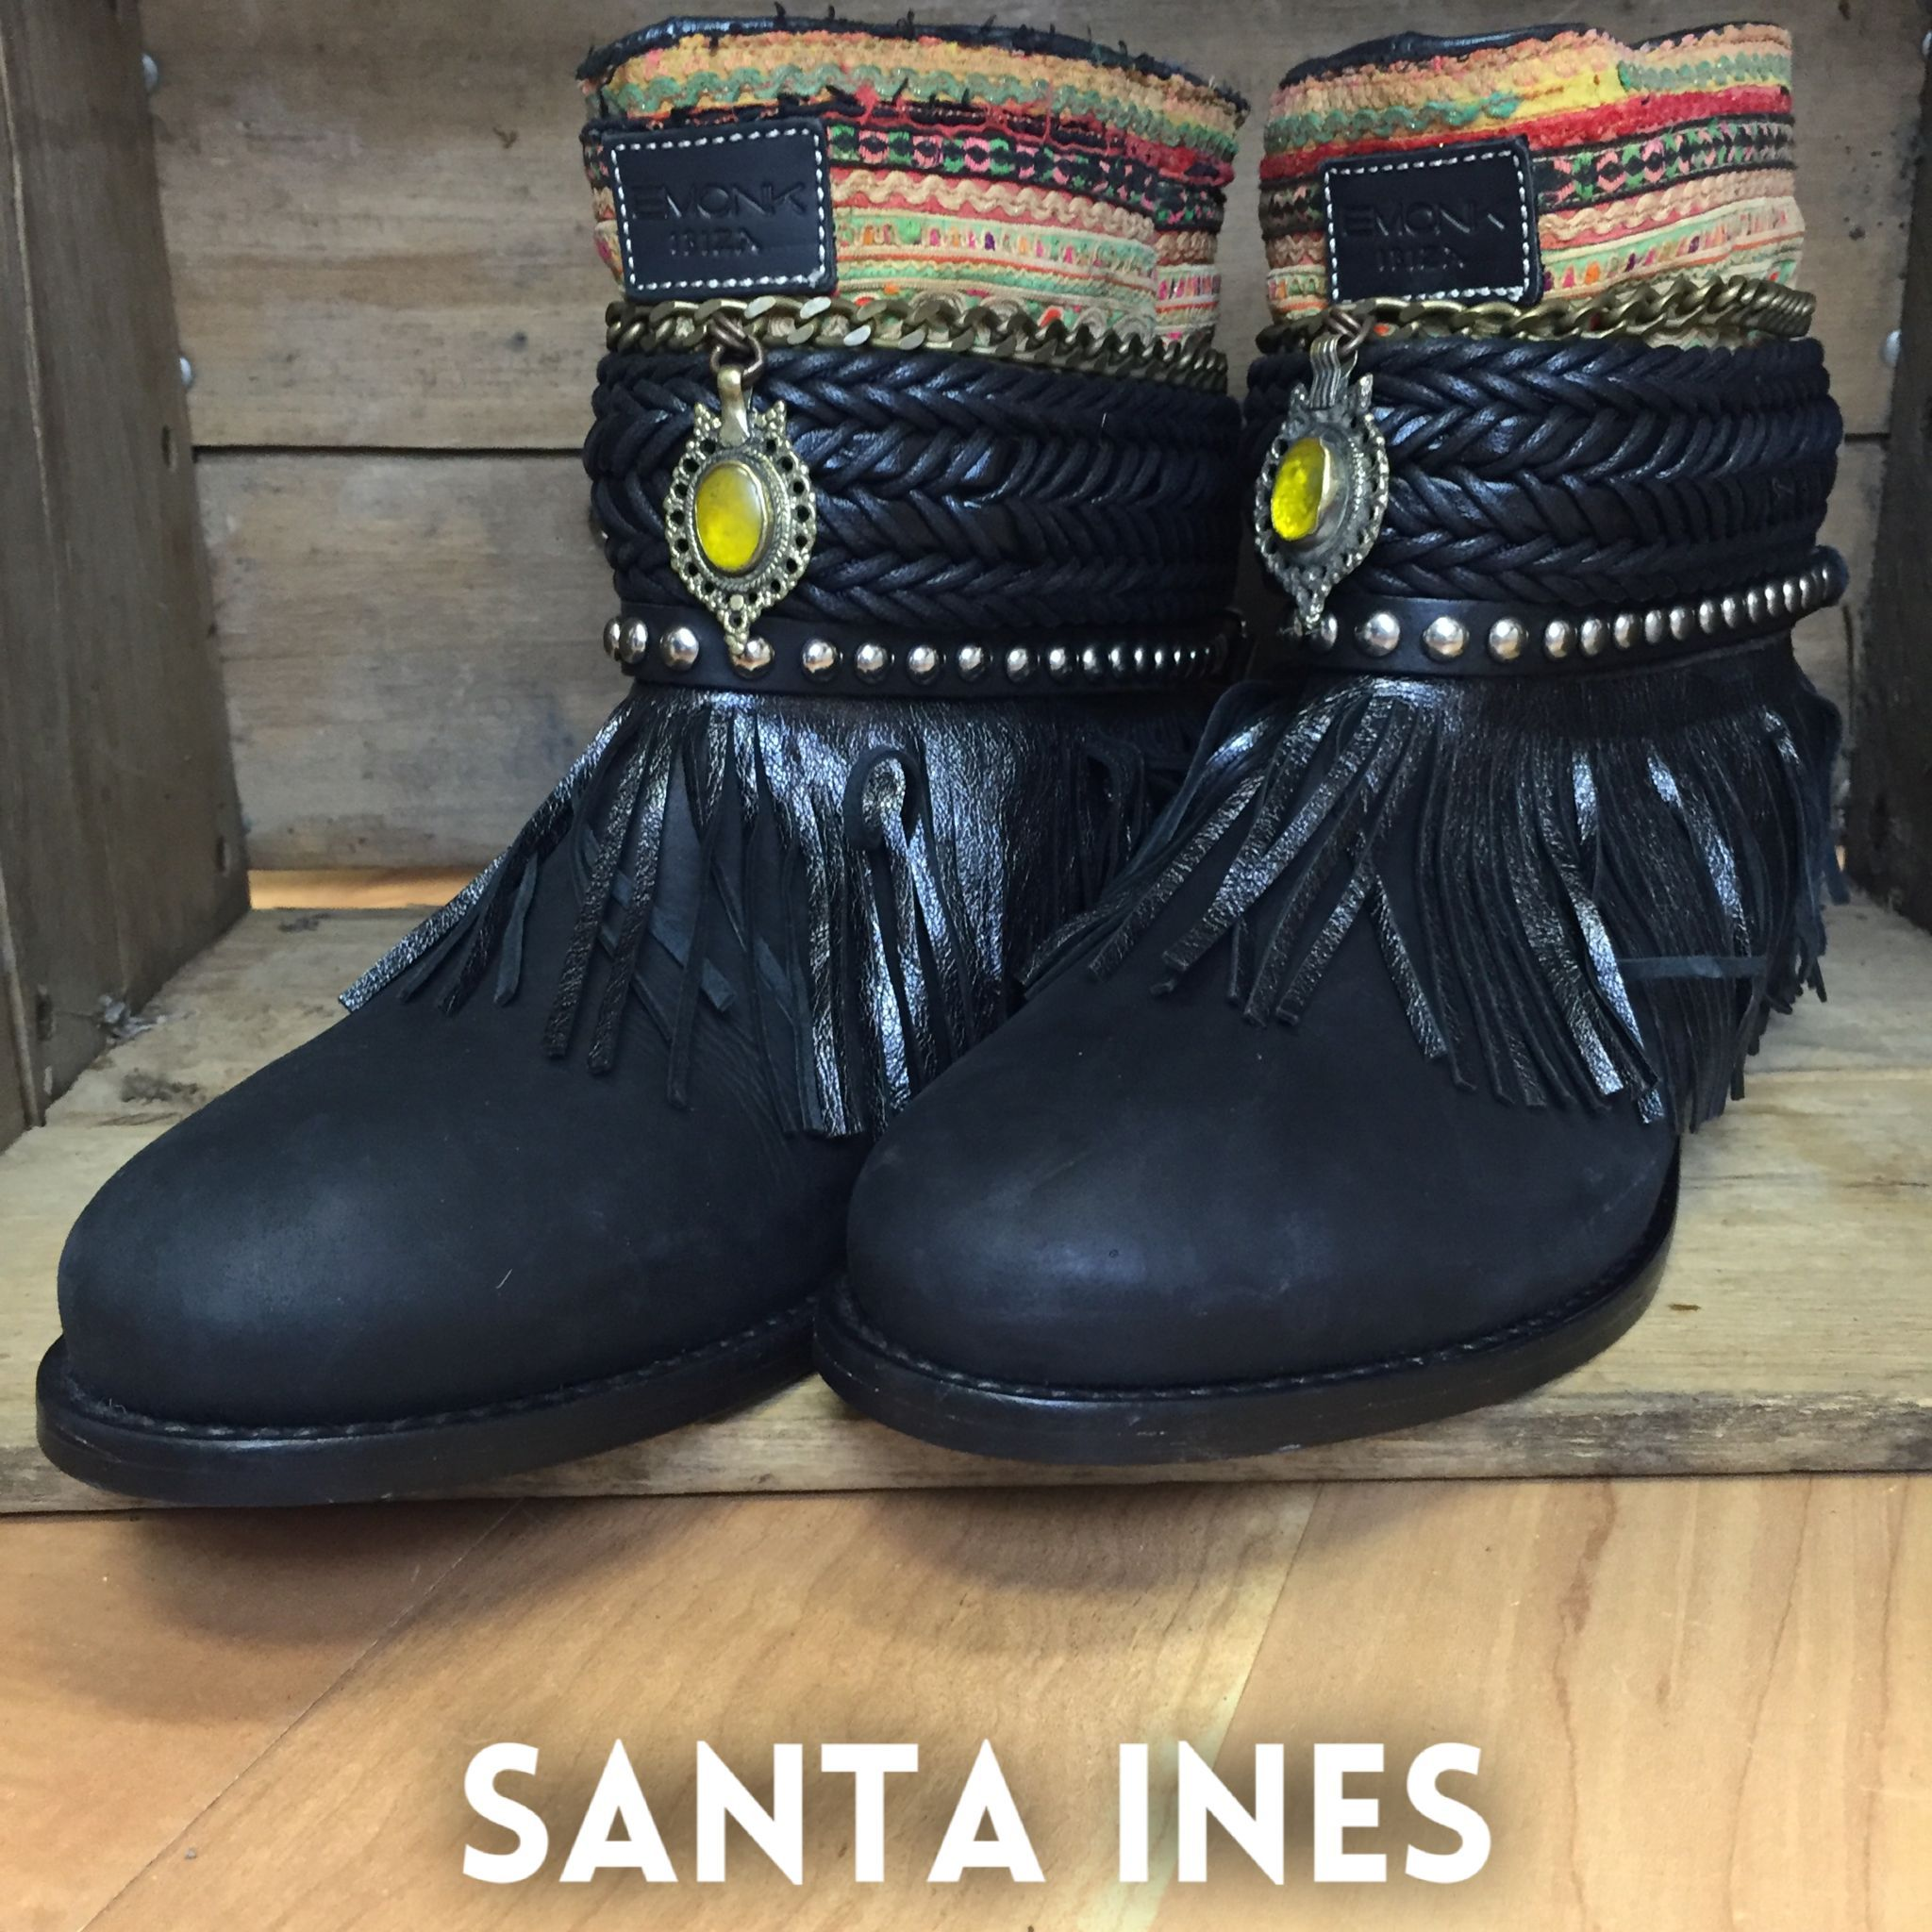 The epitome of bohemian. These handmade leather boots are one of a kind. Created in Ibiza with materials collected from all around the world. No two pair are alike.